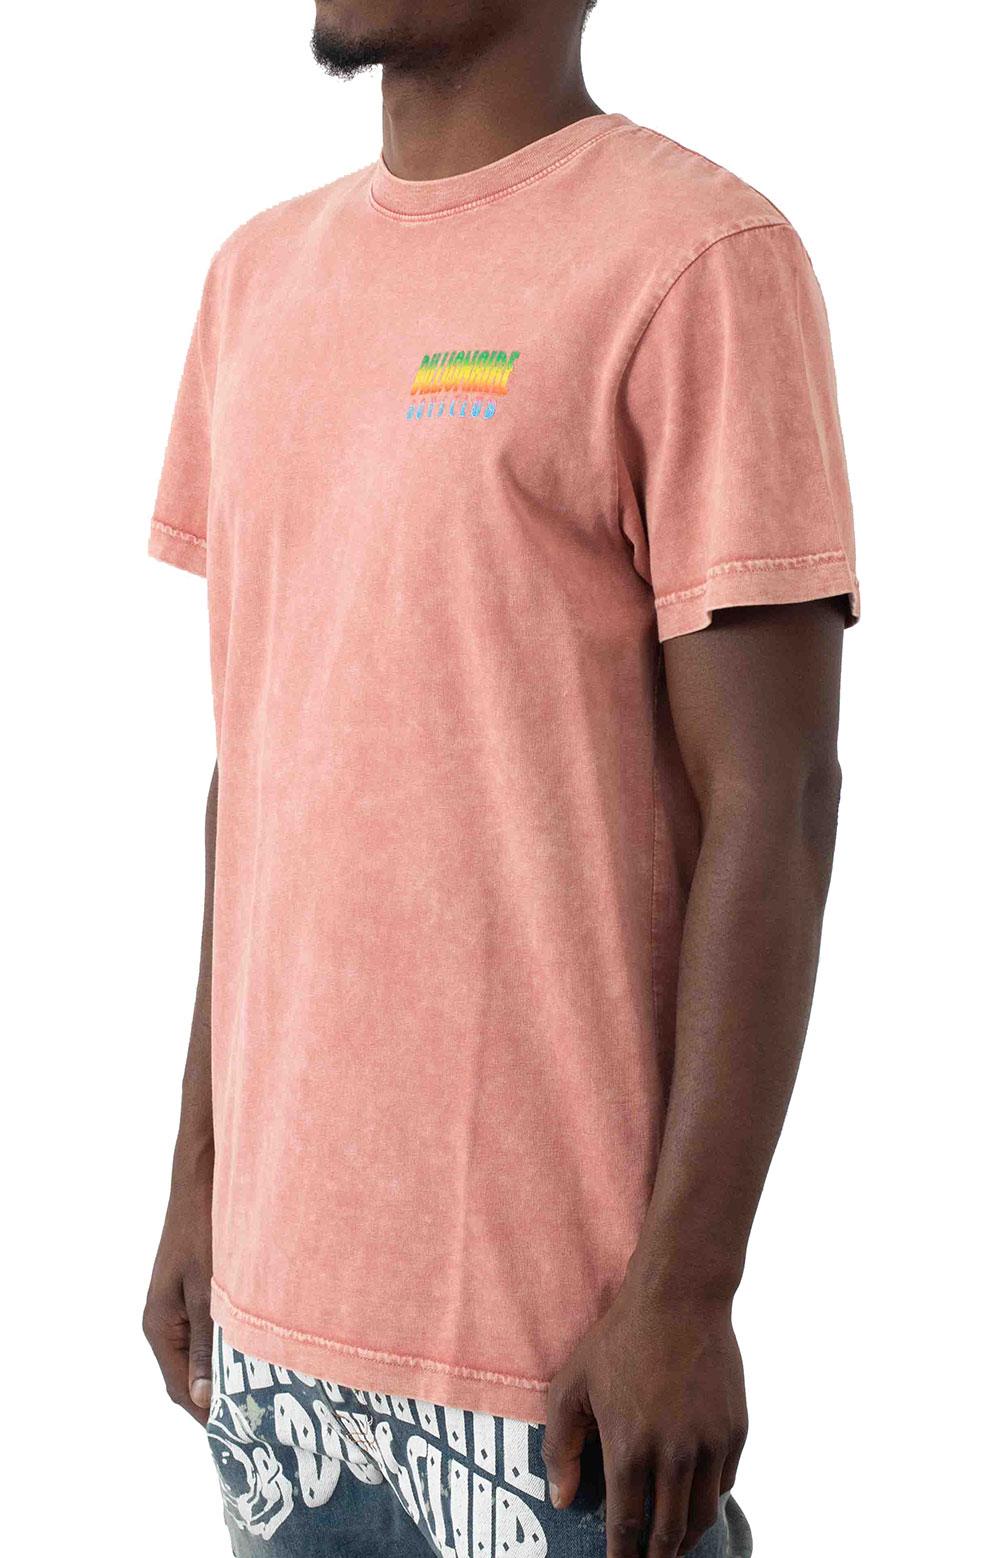 BB Space Wave SS Knit T-Shirt - Wild Rose  3